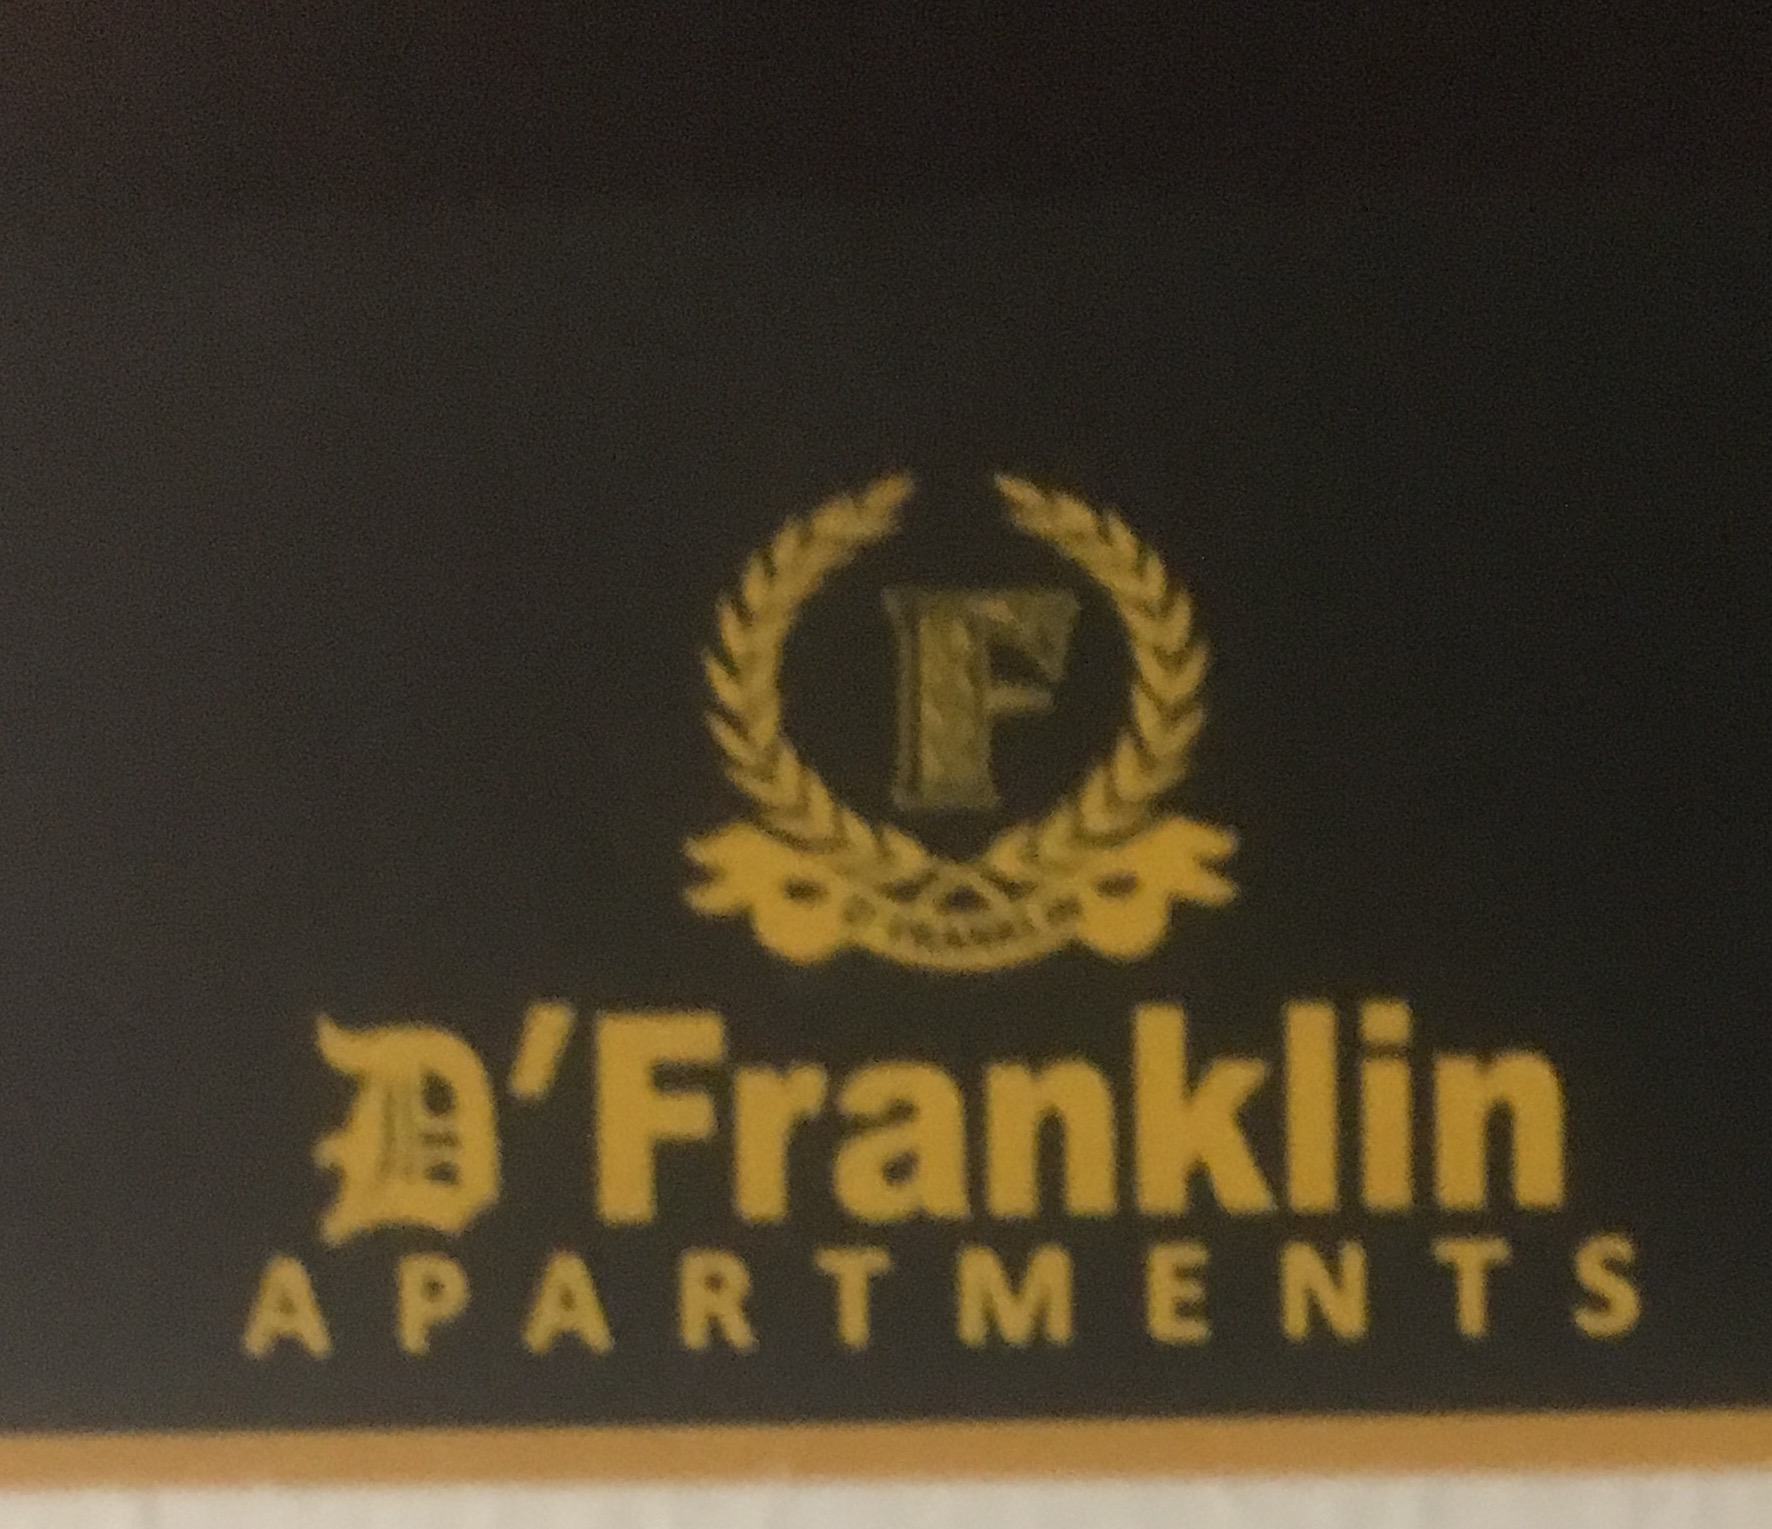 D'franklin Apartments